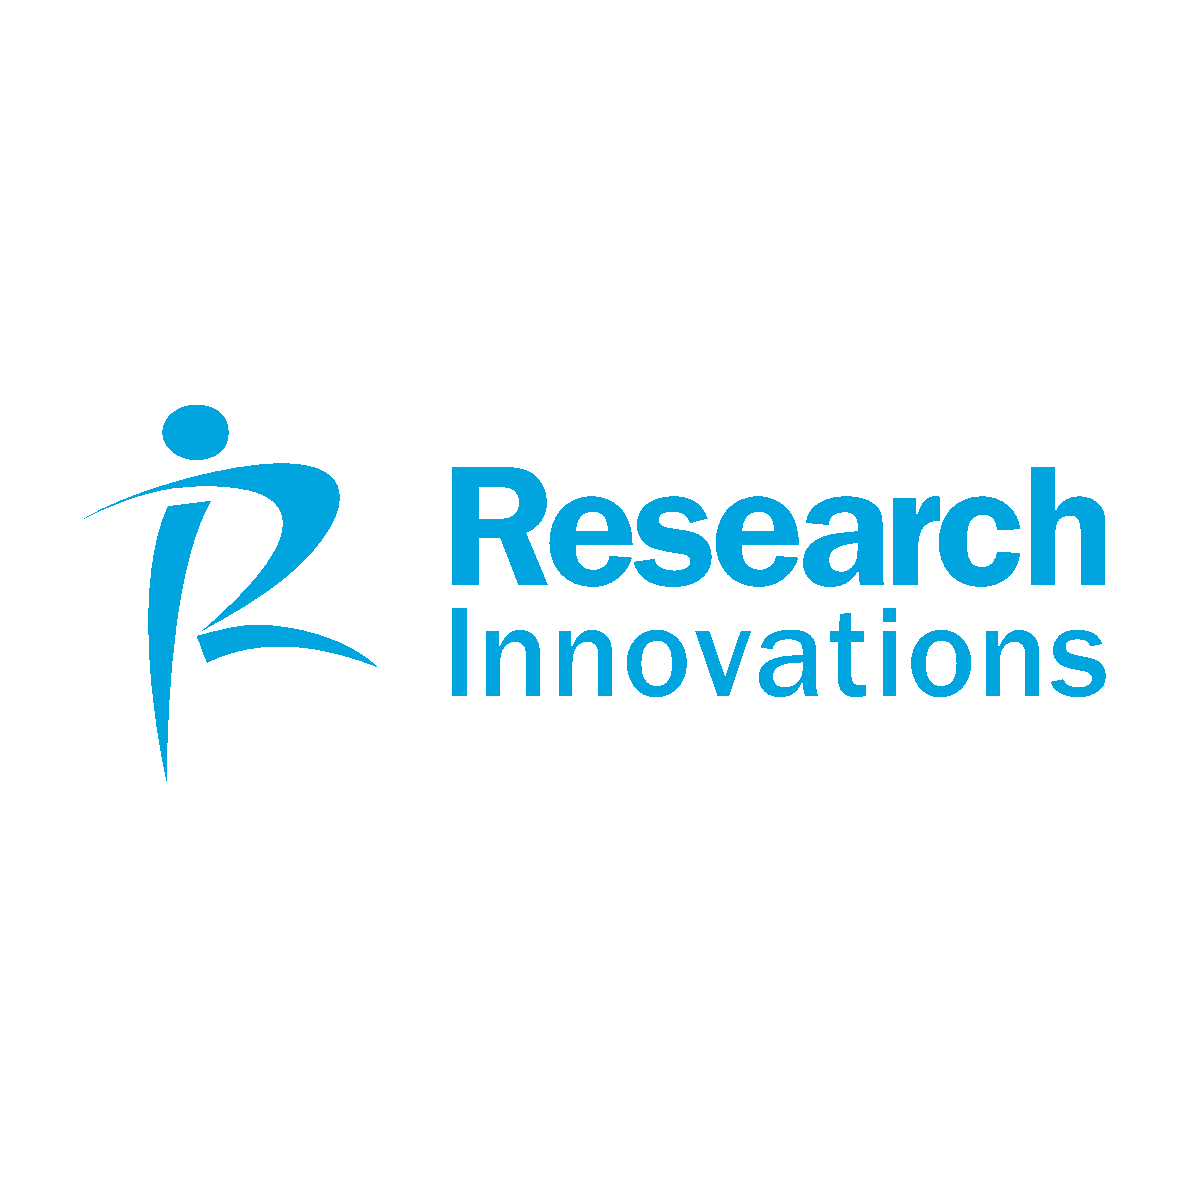 Research Innovations - Production Operations Engineer